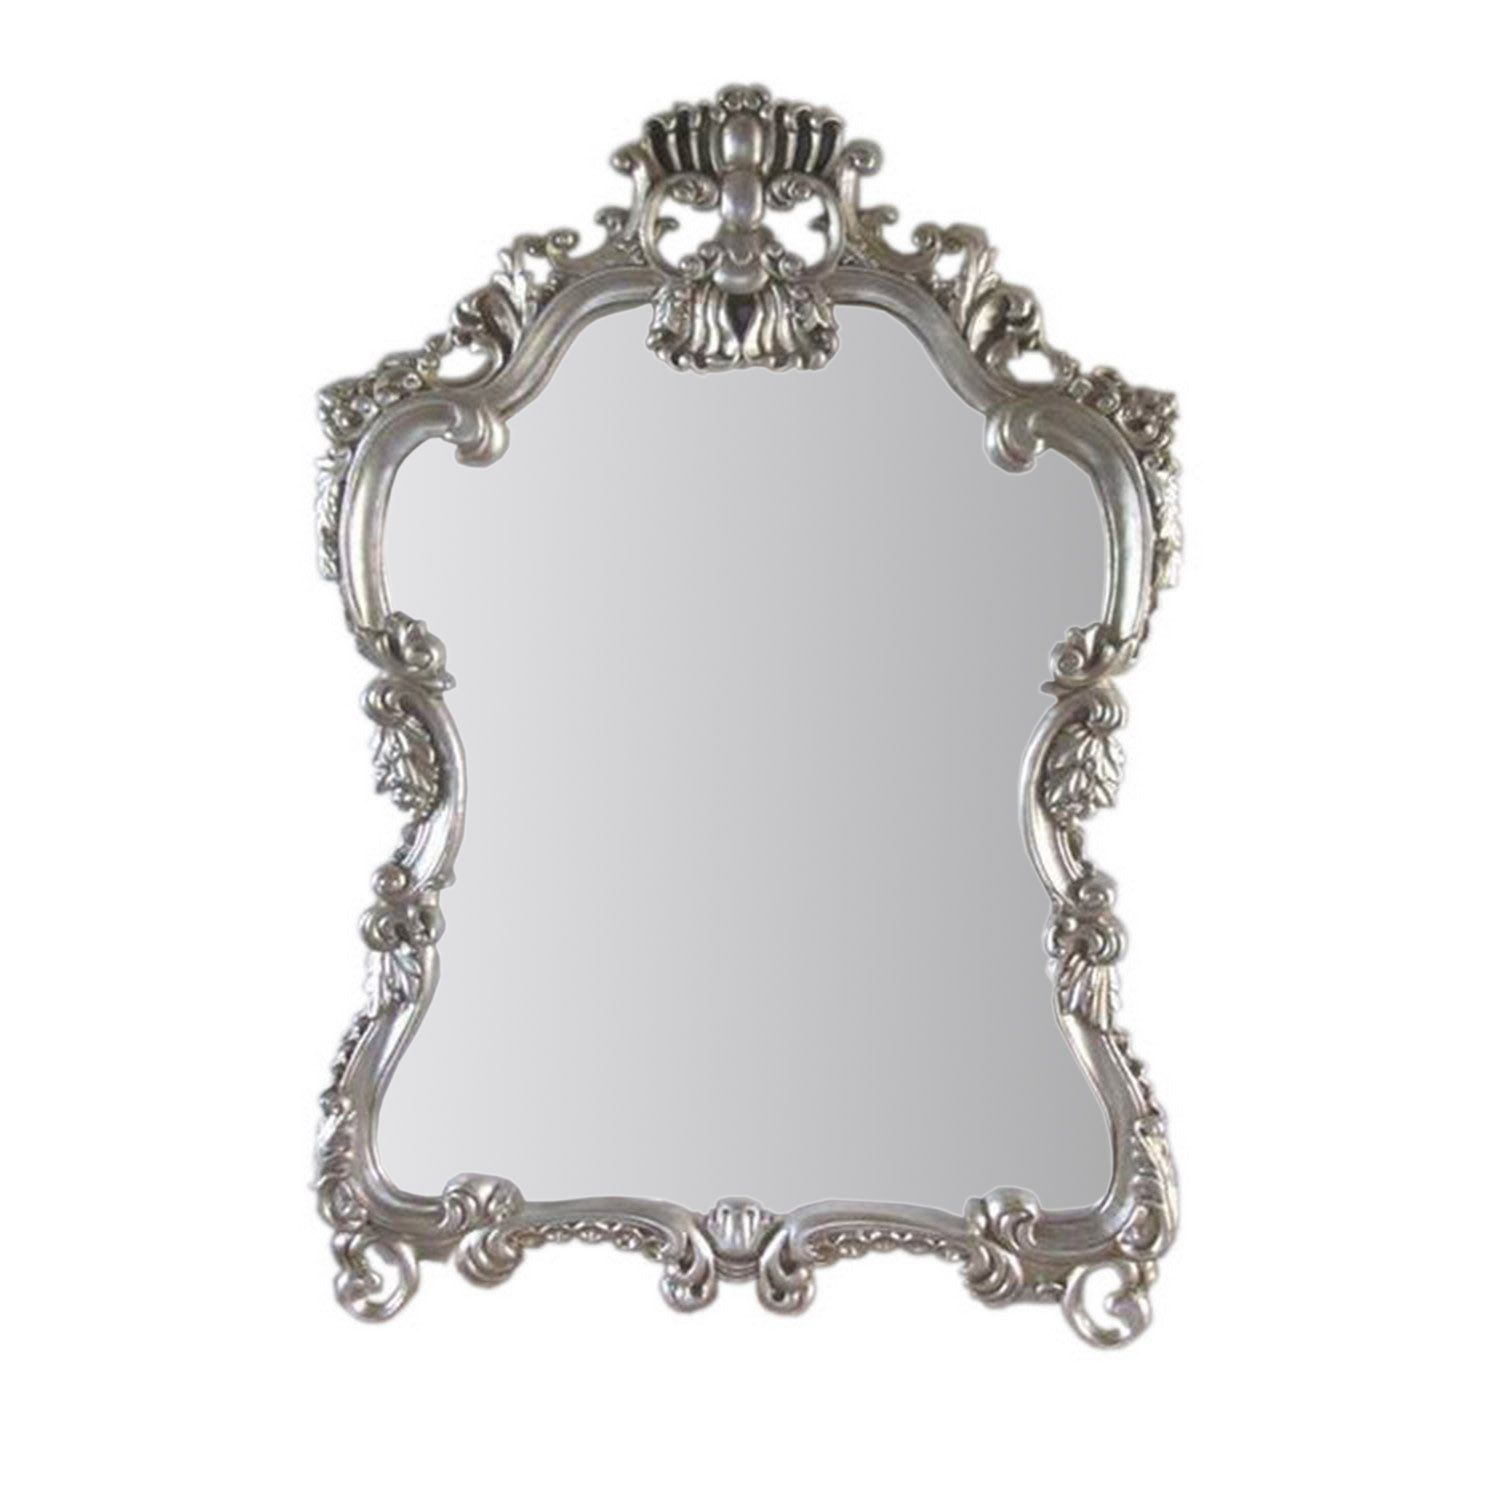 Mirrors In Bedroom Superstition Buy Silver Belvedere Mirror Gallery Mirrors The Range